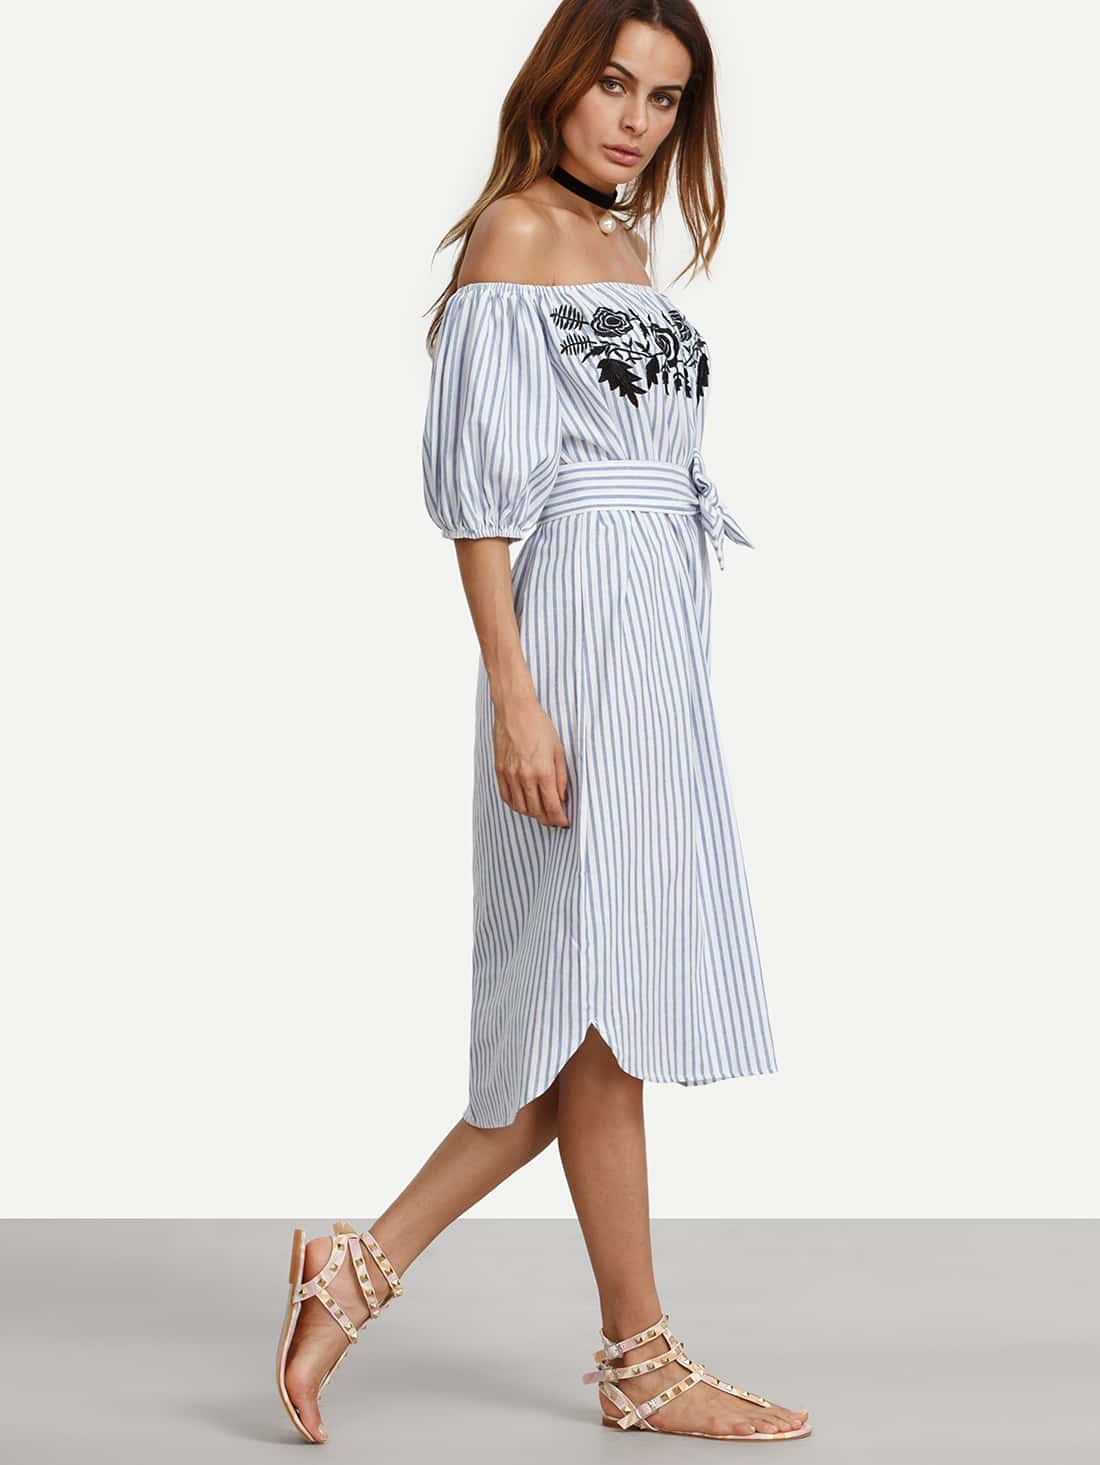 Blue Vertical Striped Off The Shoulder Embroidered Dress pictures